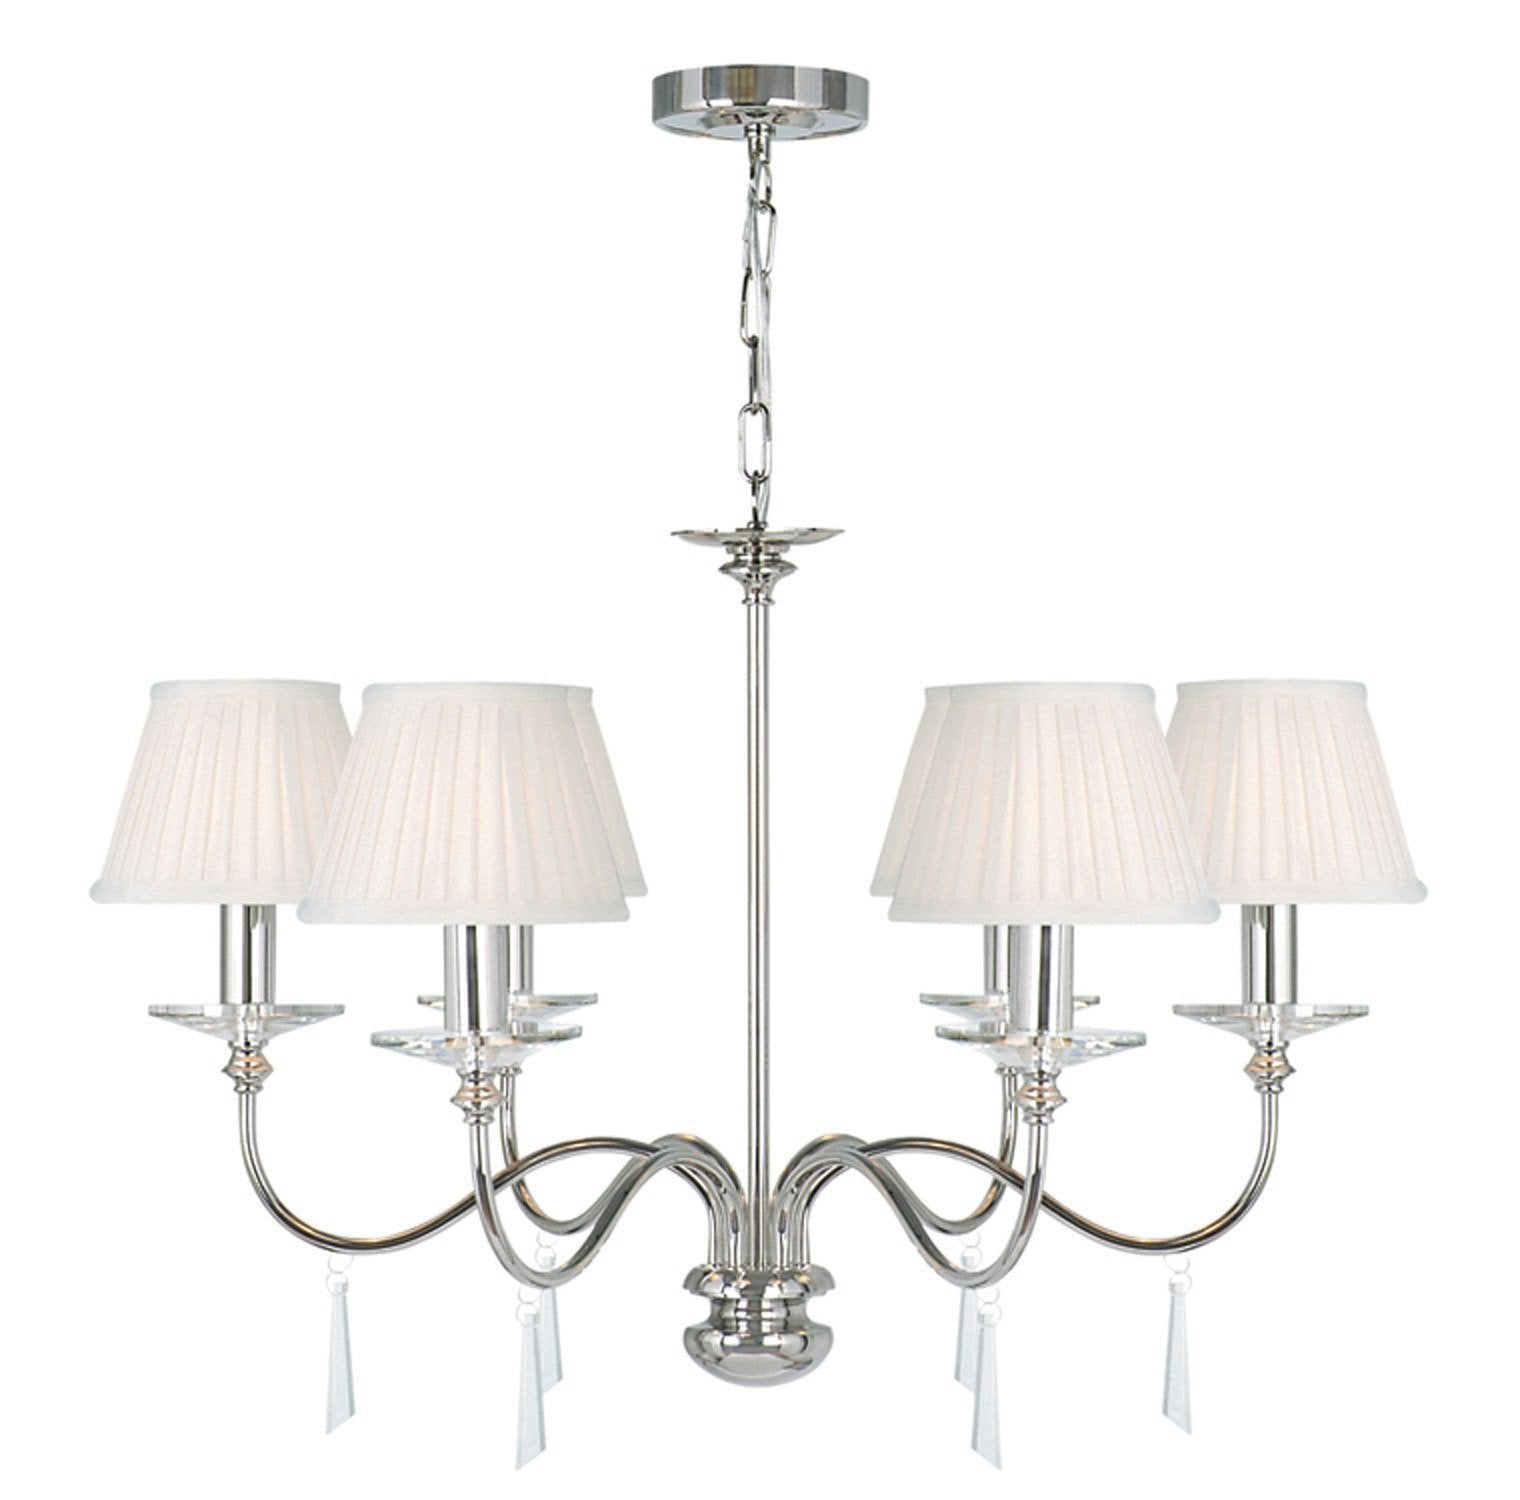 Finsbury Park 6 Arm Chandelier - London Lighting - 1